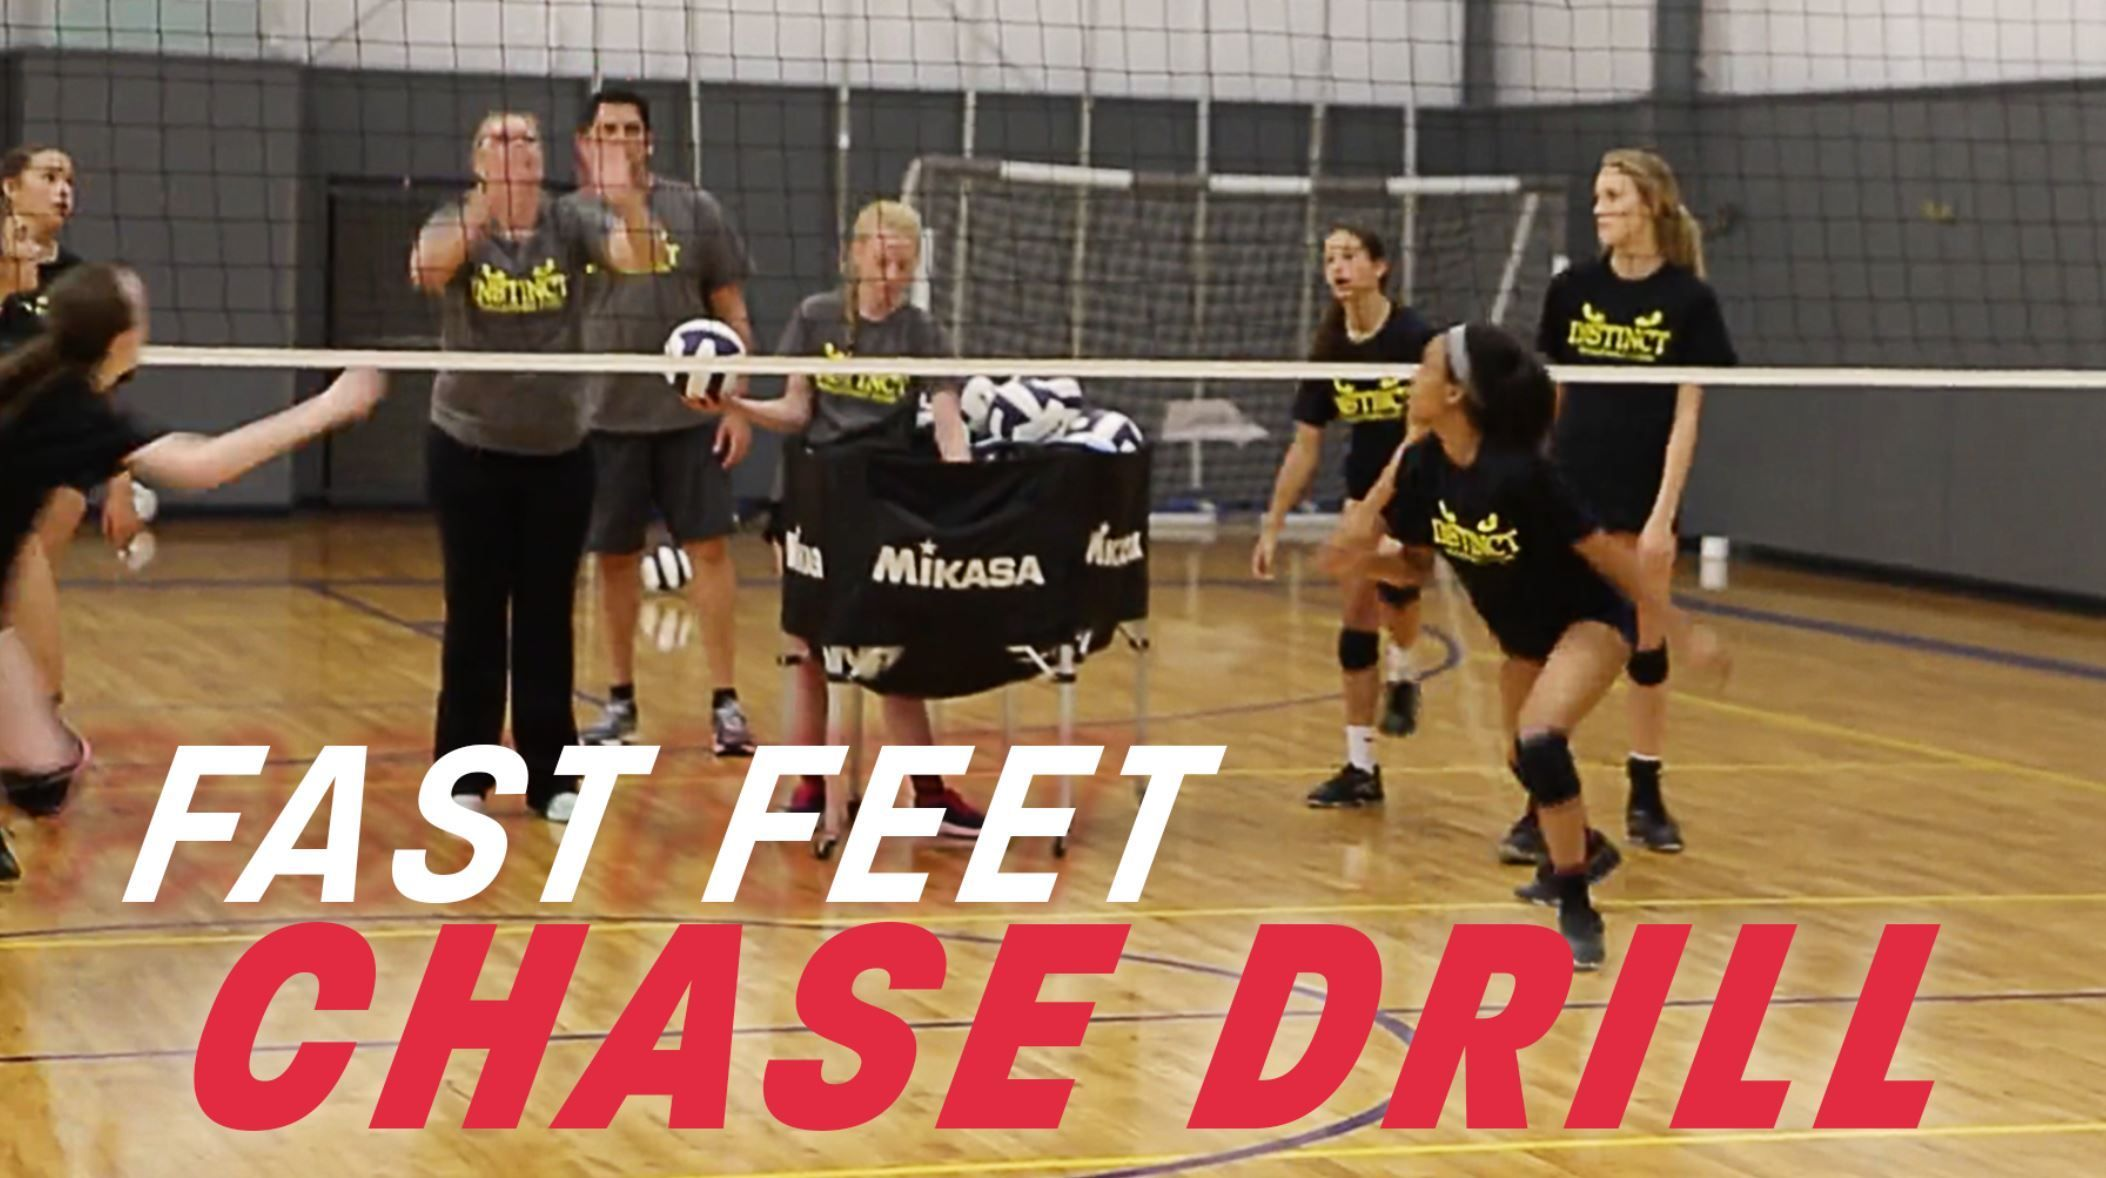 Encourage Fast Feet With Chase Drill Chase Drill Encourage Fast Feet In 2020 Coaching Volleyball Volleyball Training Volleyball Skills